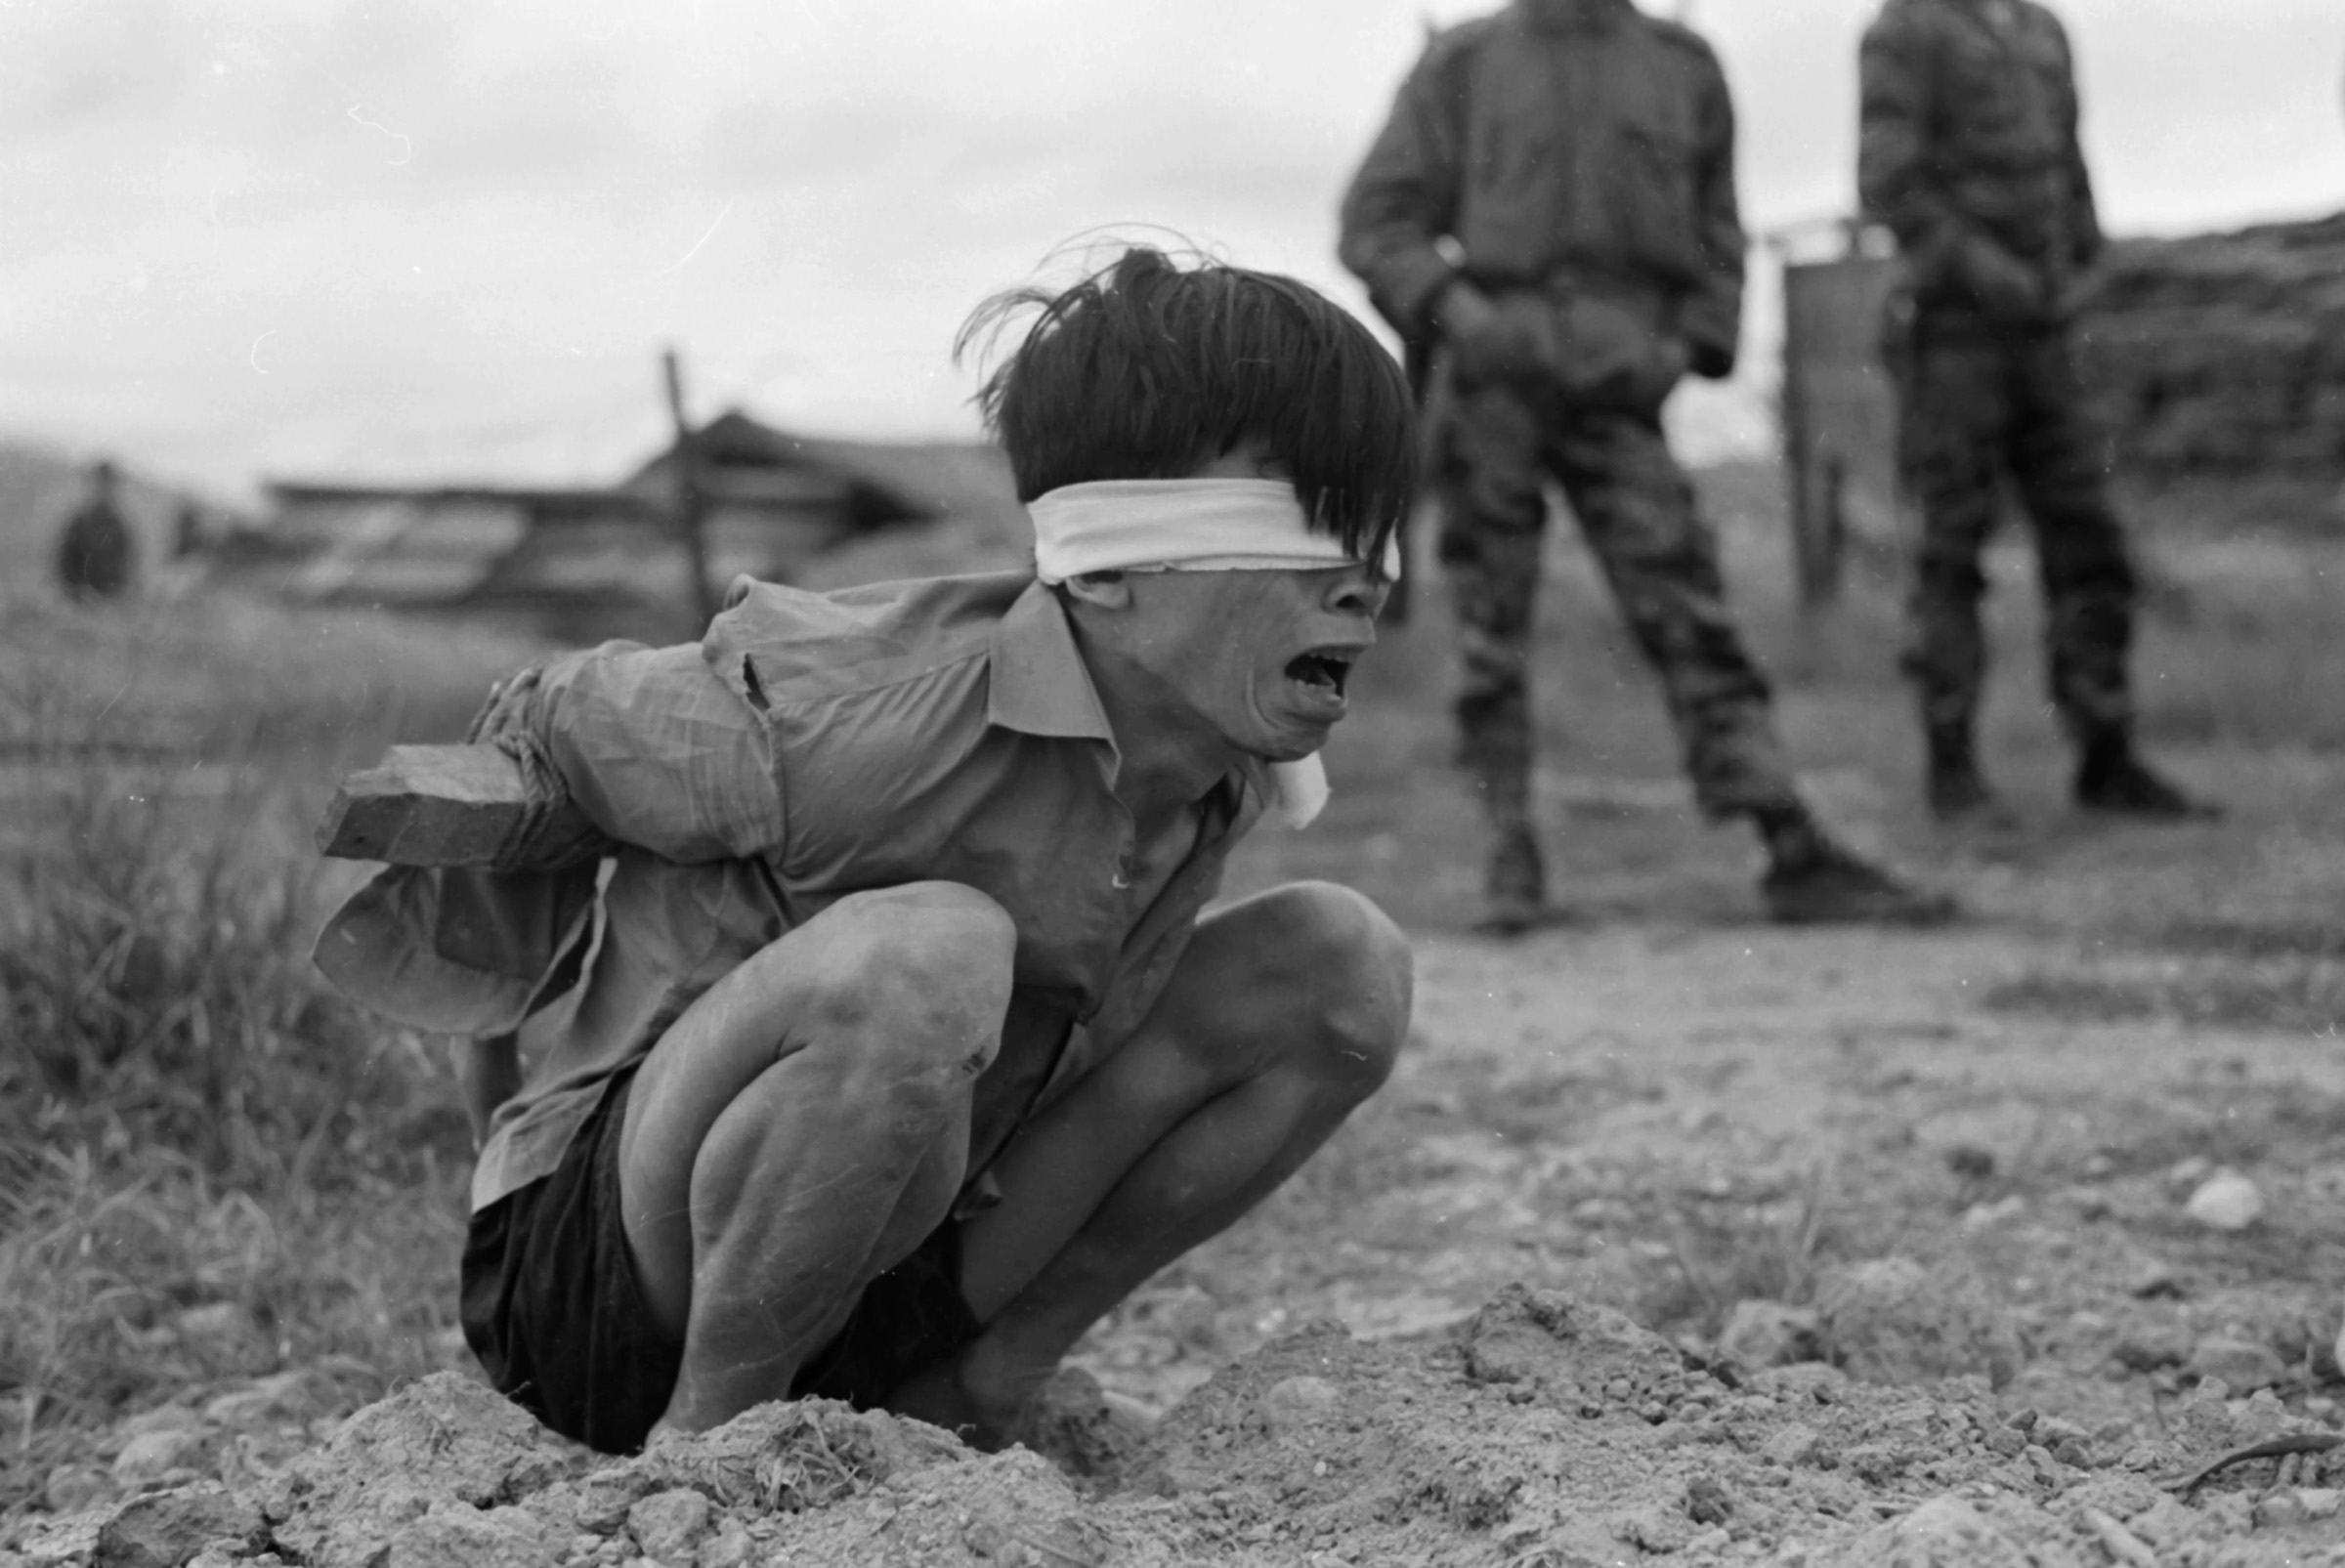 A Viet Cong prisoner is interrogated at the A-109 Special Forces Detachment in Thuong Duc, 25 km west of Da Nang. Photograph taken by PFC David Epstein on January 23, 1967.